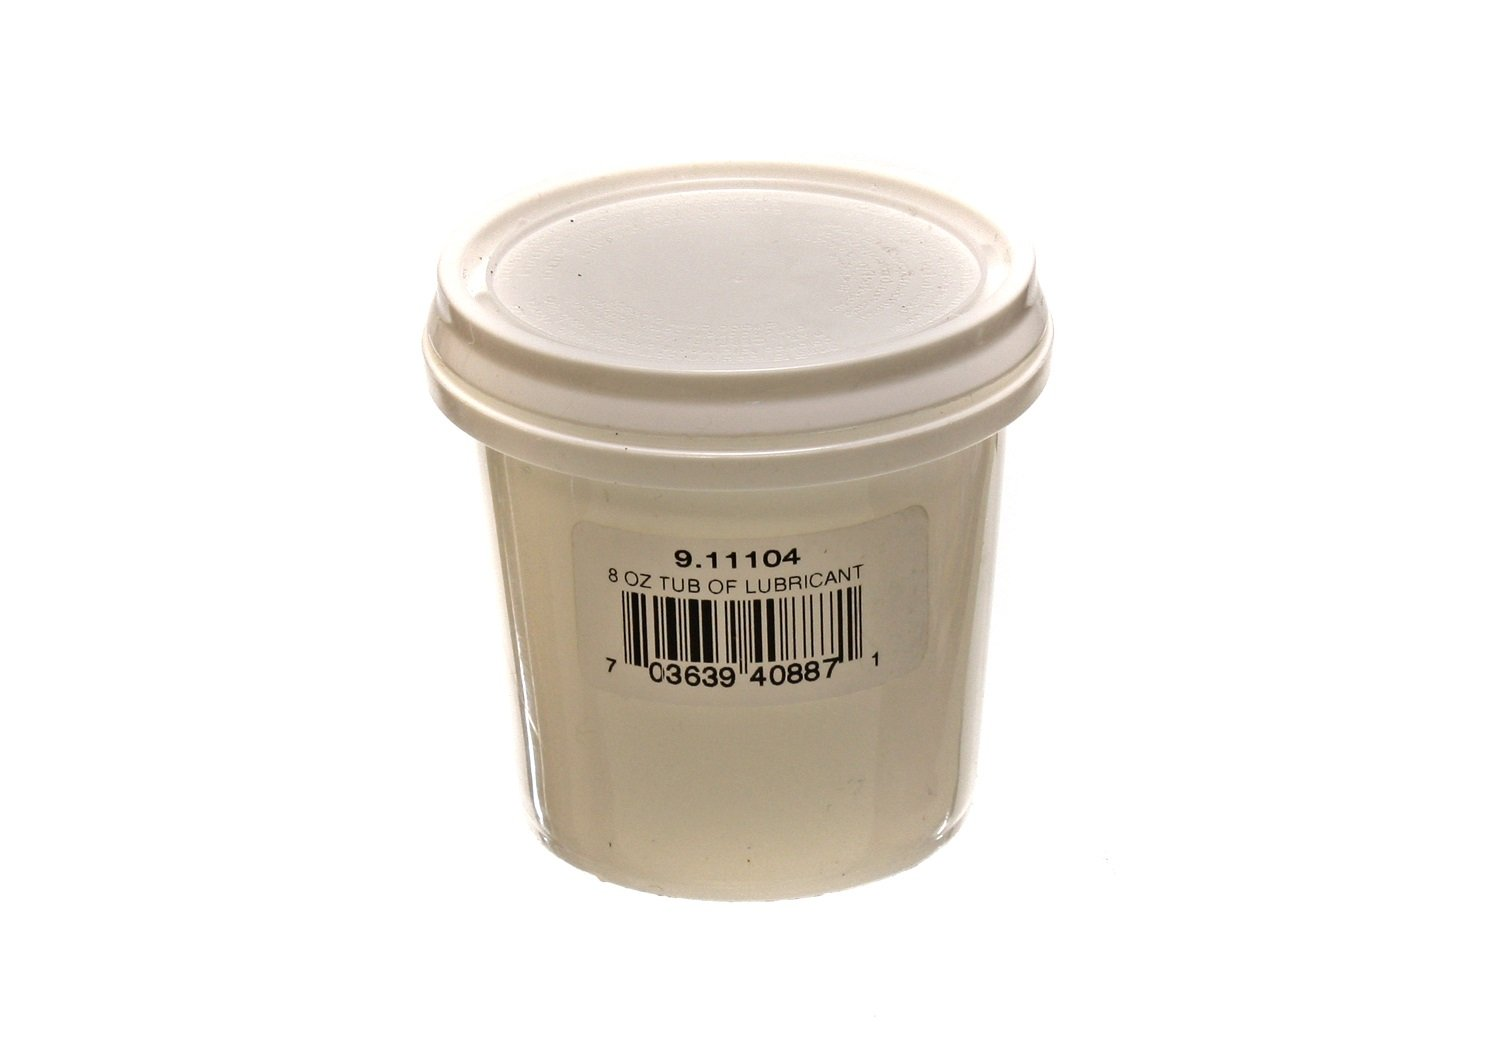 Energy Suspension 9.11104 8 Oz Tub Of Lubricant by Energy Suspension